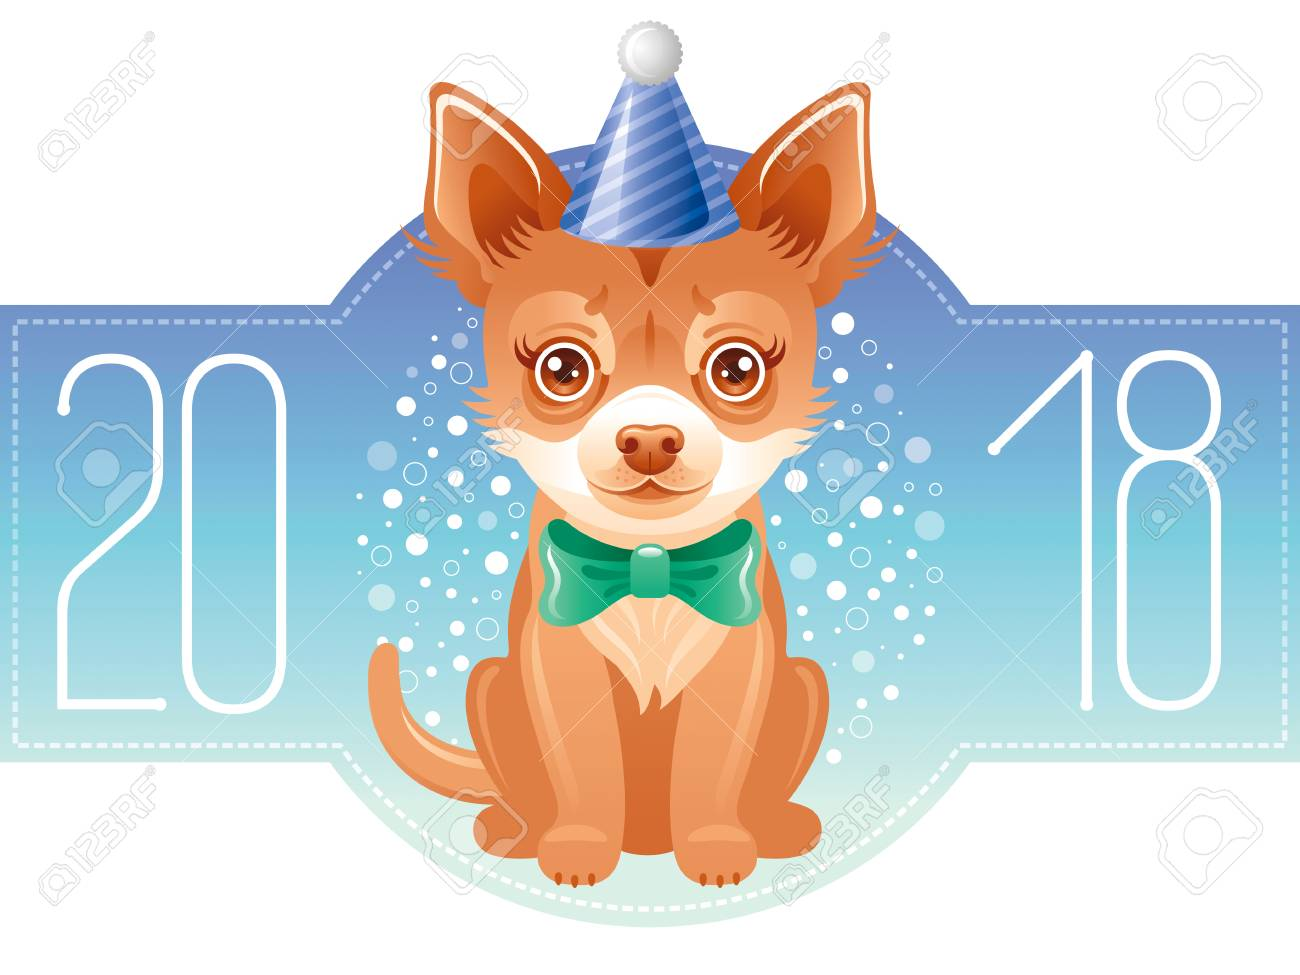 Happy new year 2018 greeting card chinese new year dog symbol happy new year 2018 greeting card chinese new year dog symbol oriental holiday buycottarizona Choice Image